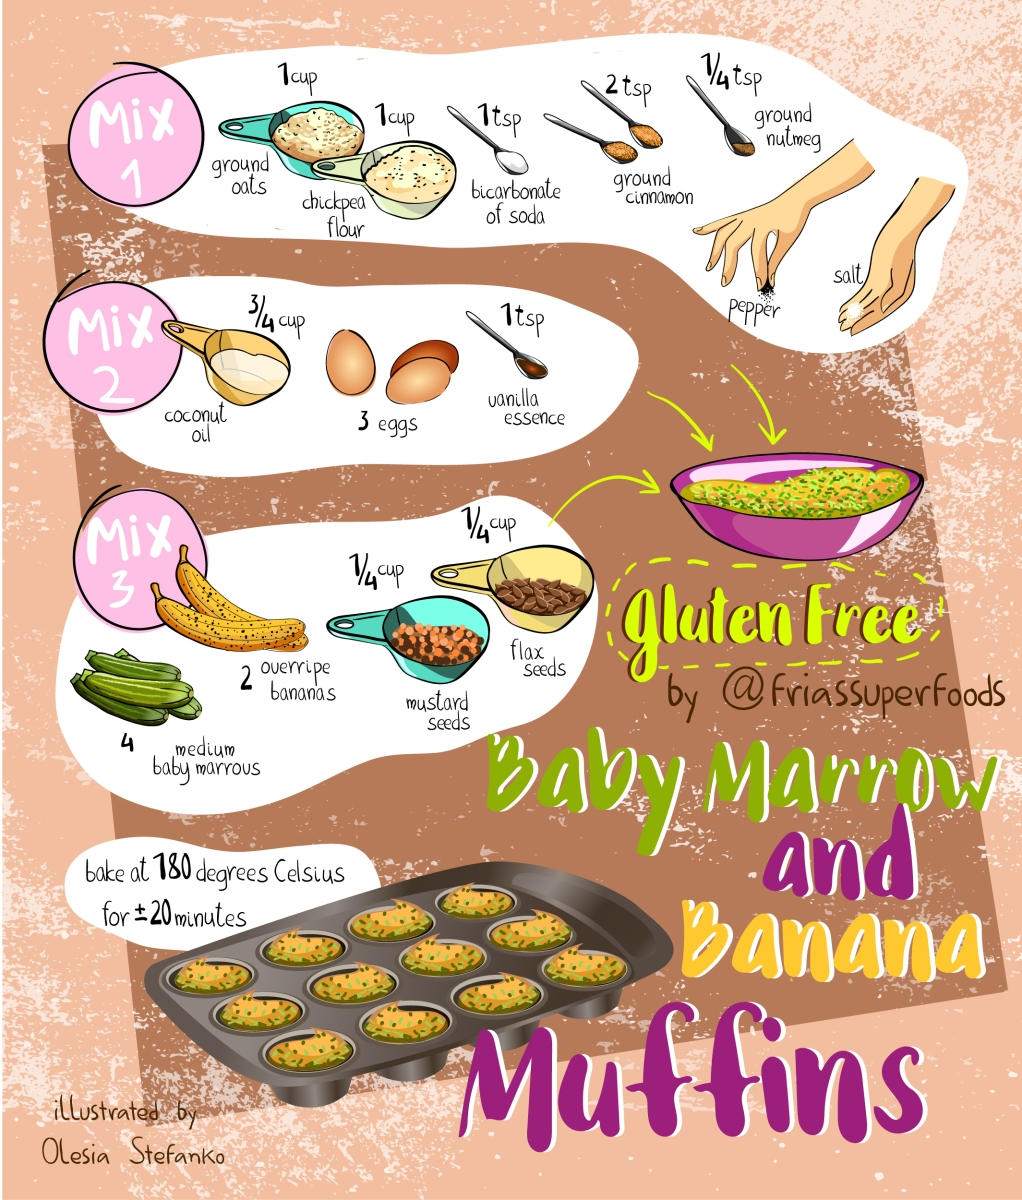 Gluten free baby marrow and banana muffins